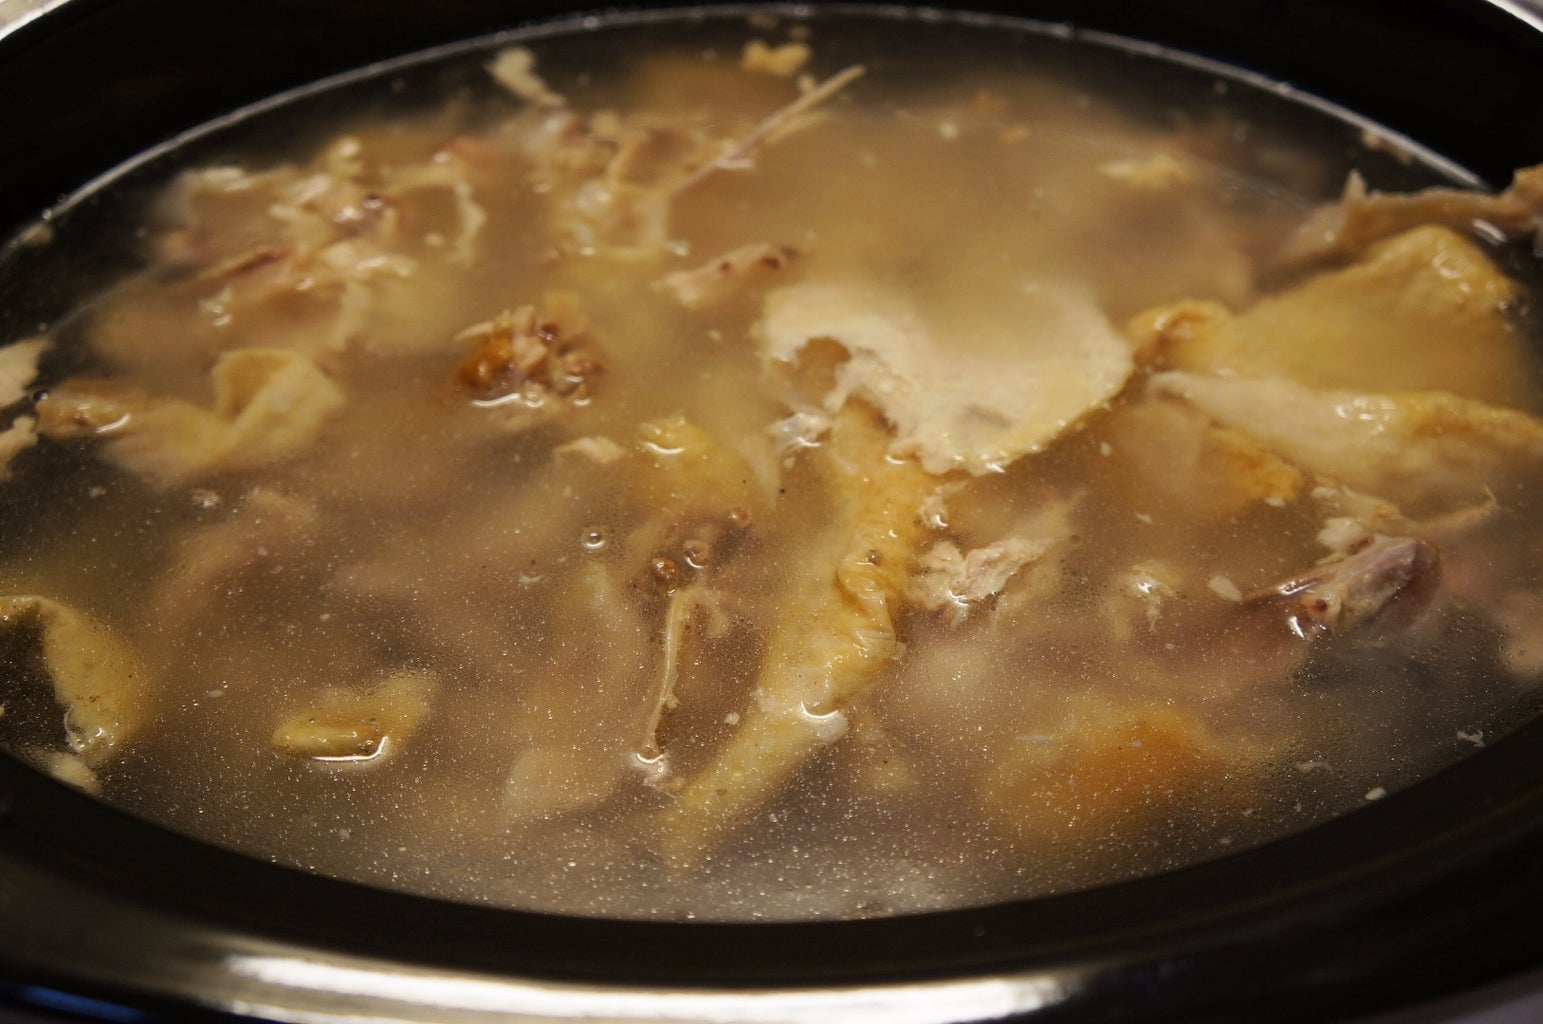 Cooking the Chicken Stock